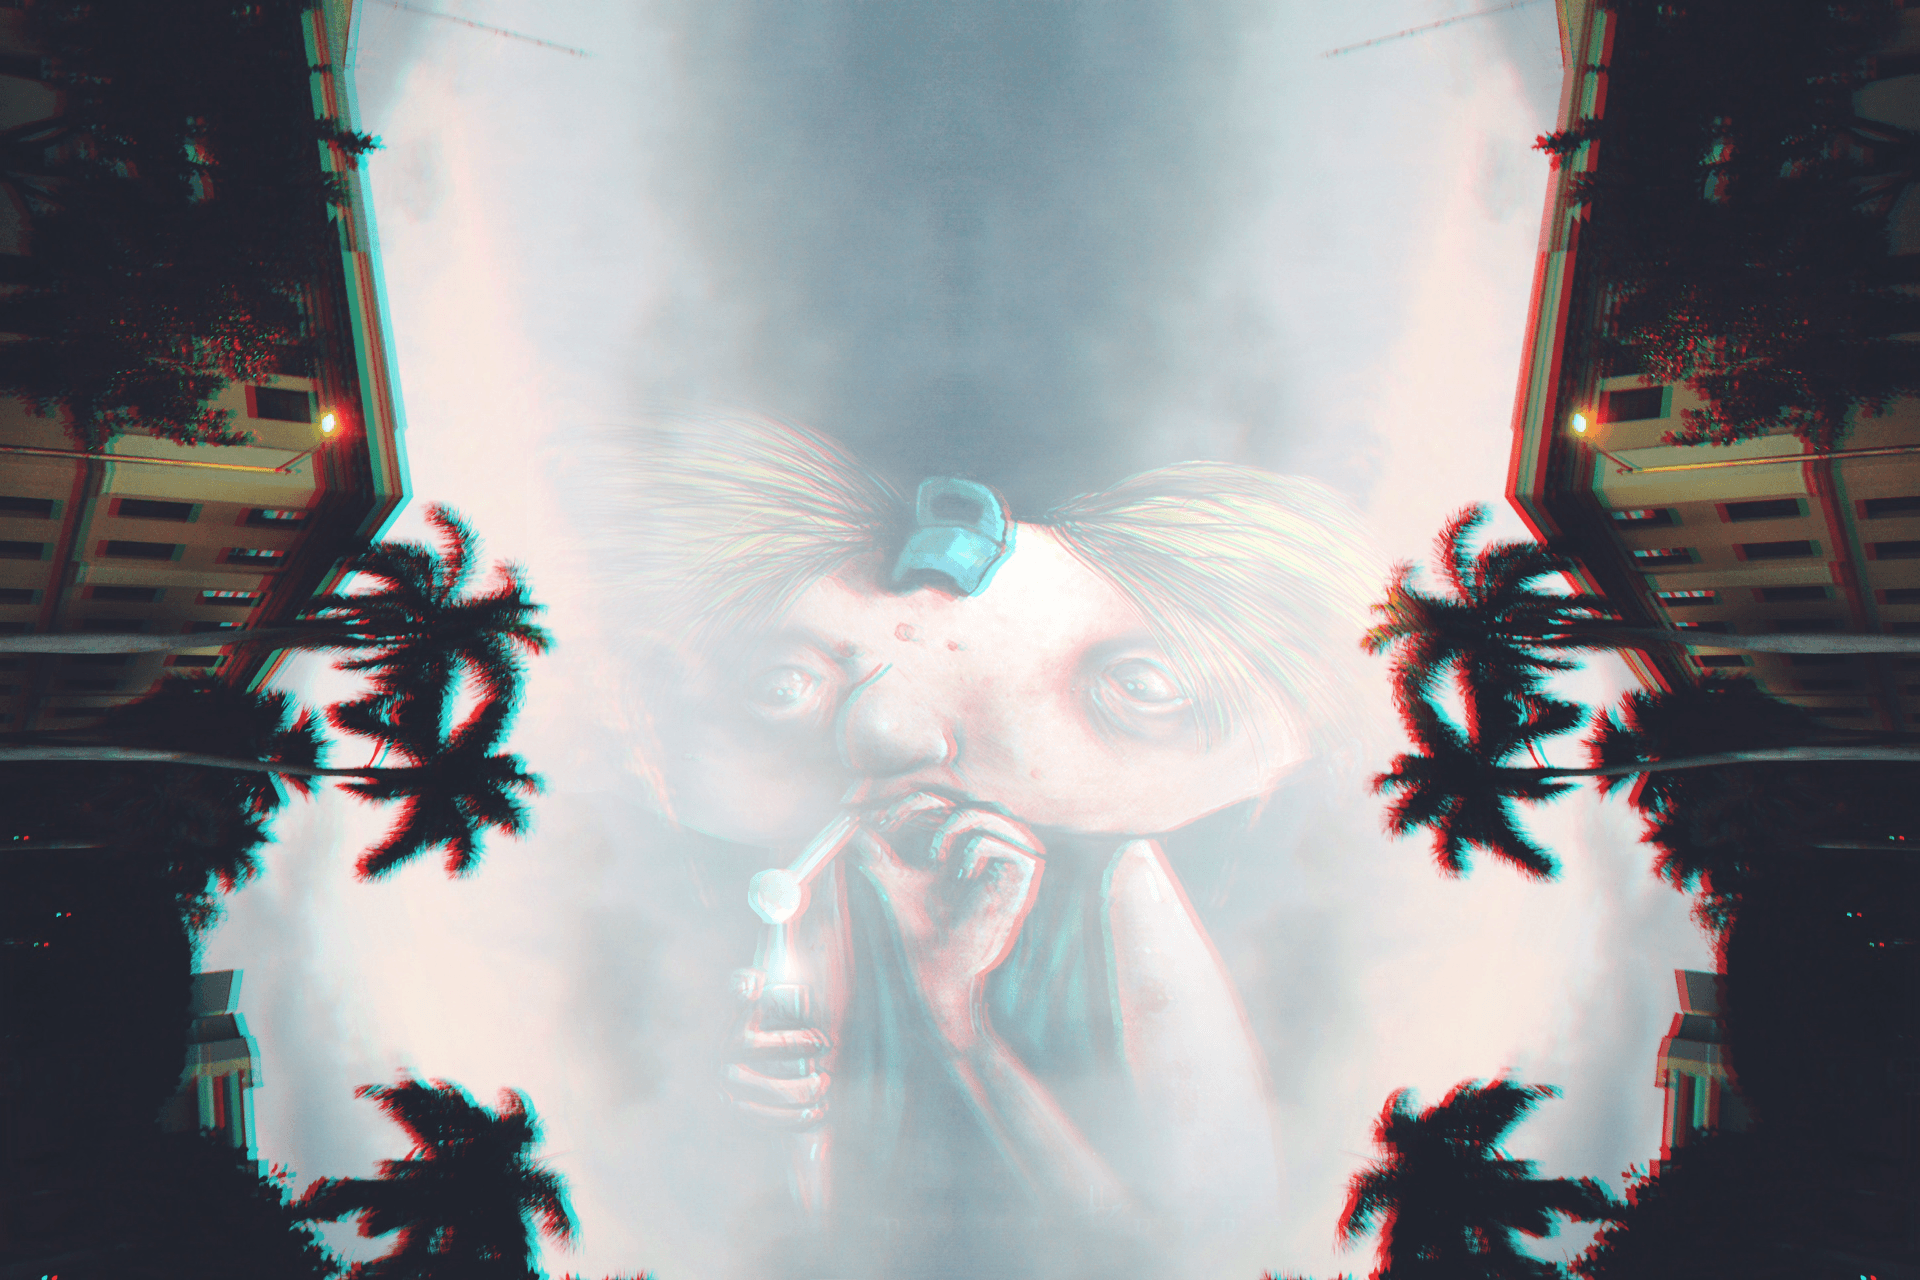 Hey Arnold!, Sky, Palm trees, Anaglyph 3D, Drugs Wallpapers HD ...